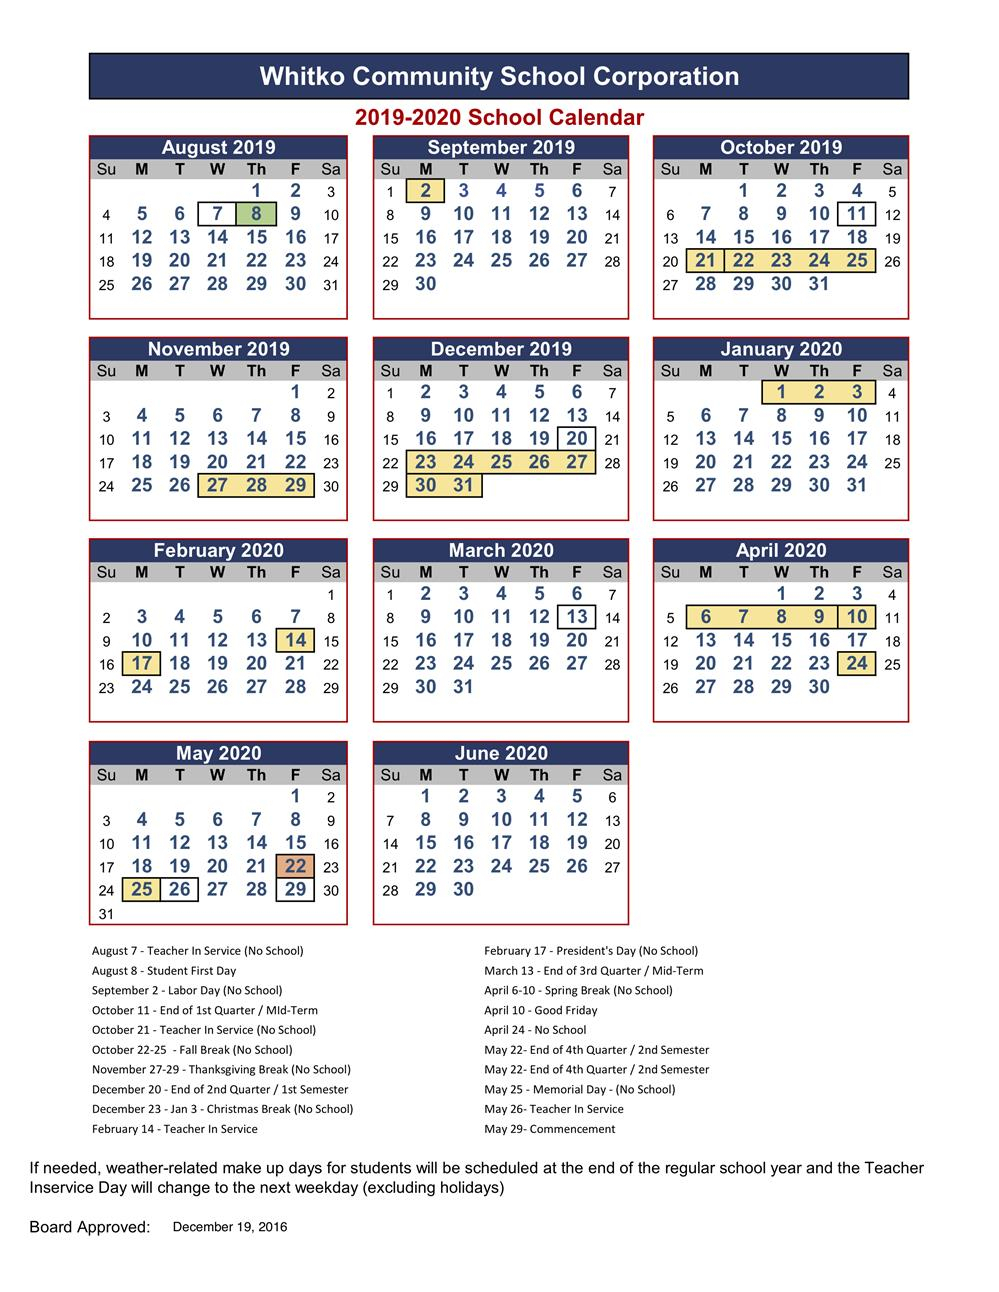 Whitko Community School Corp / Calendar in How To Create A Jweish Calender In One Page For 2019-2020